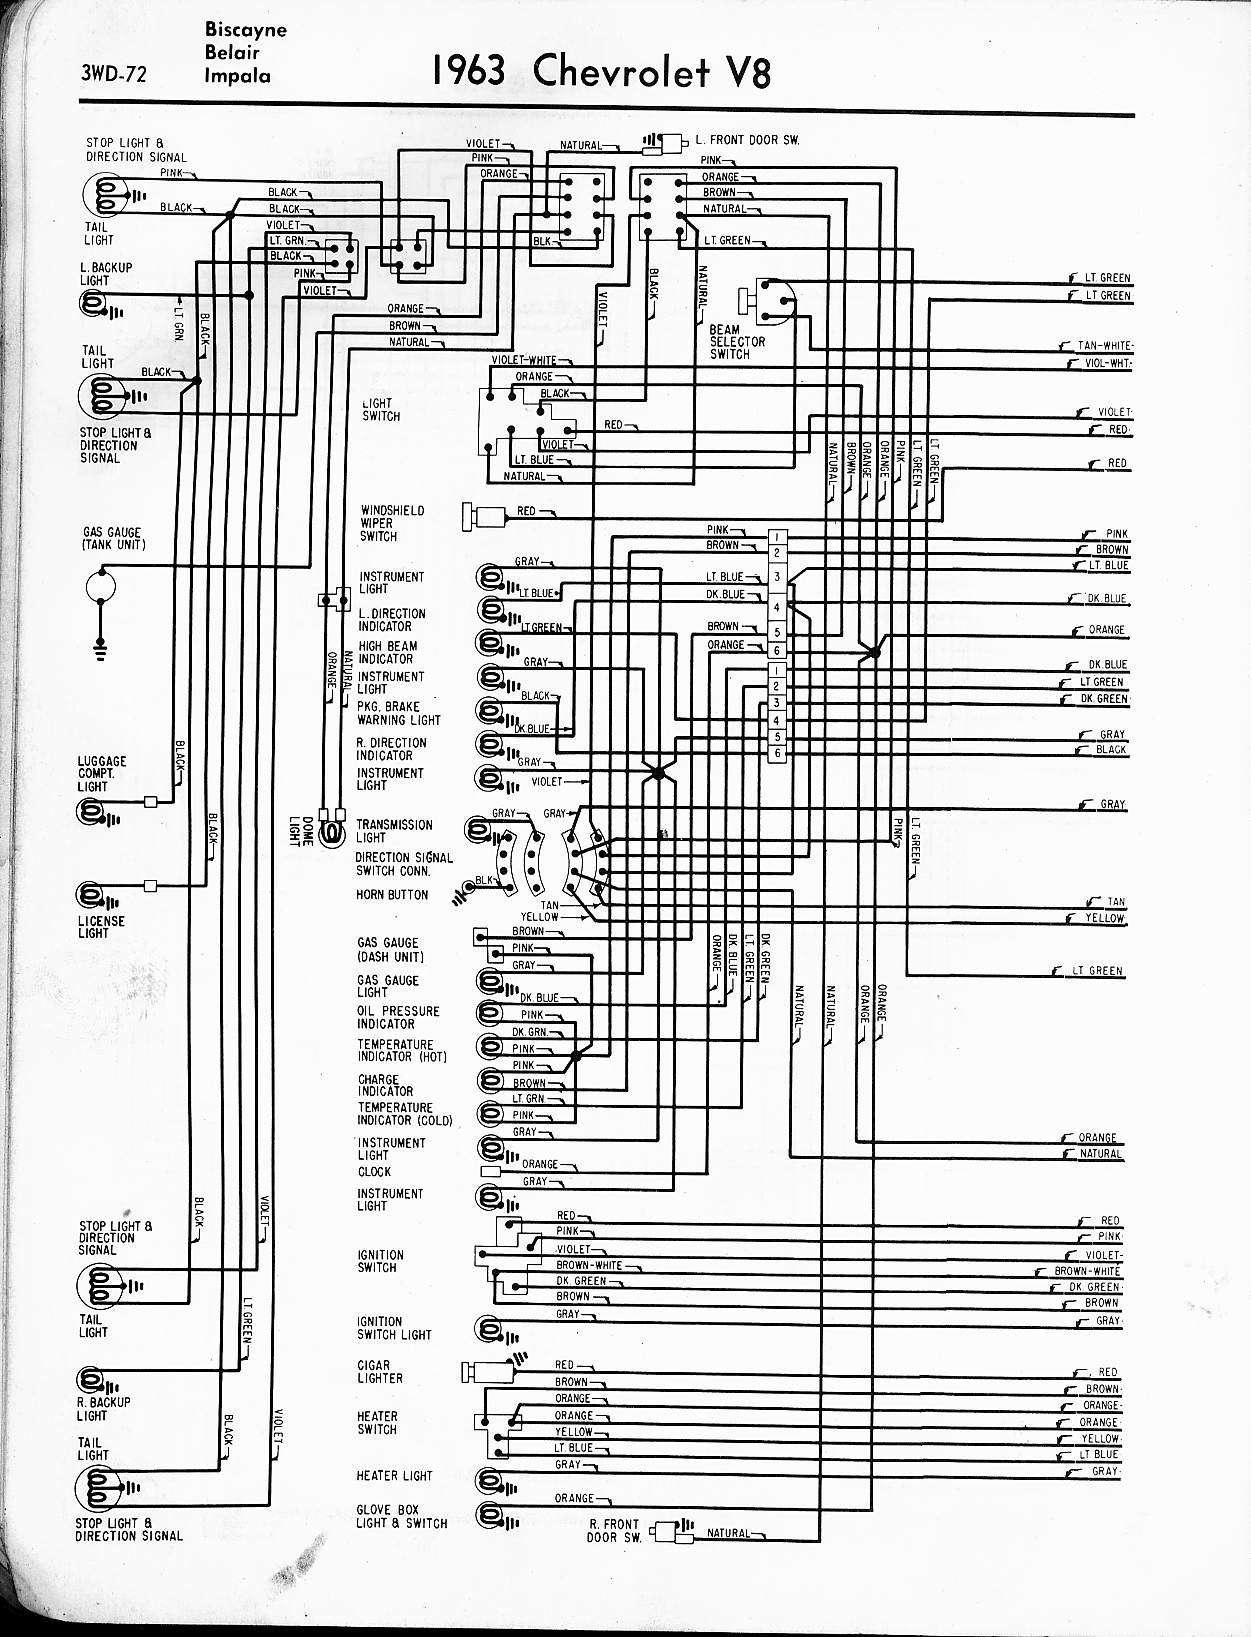 72 chevy truck wiring diagram new wiring diagram image 1928 chevy wiring diagram 1963 v8 biscayne belair impala left 57 65 chevy wiring diagrams